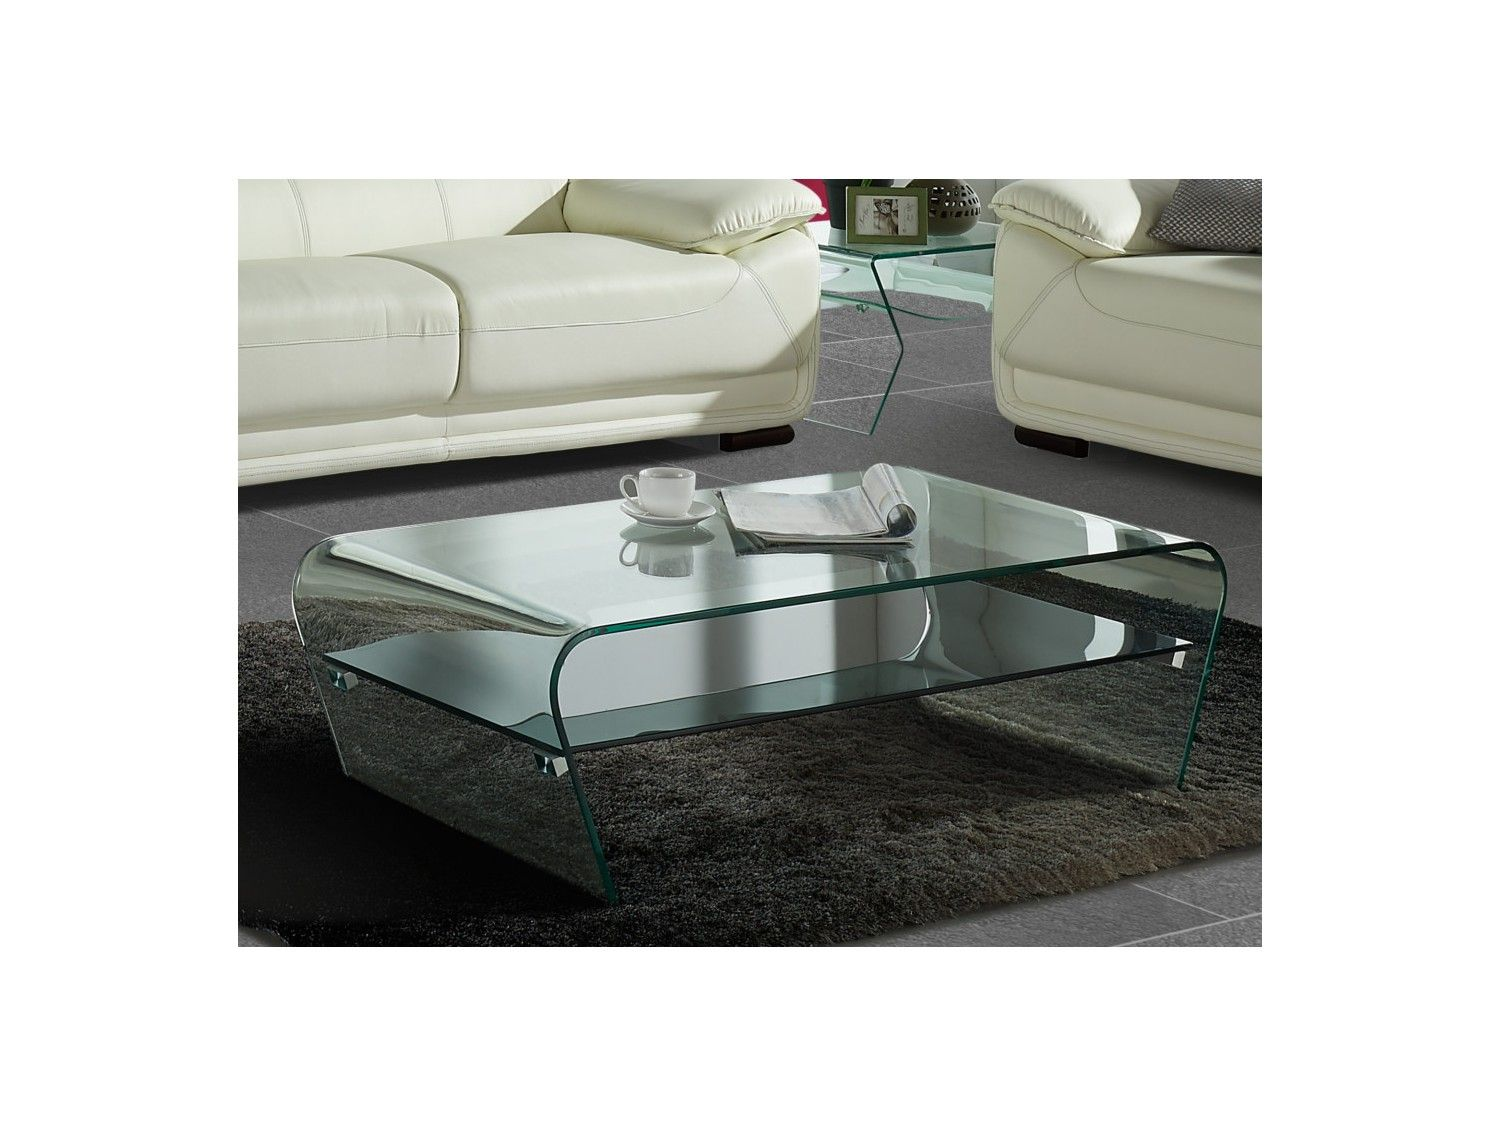 Table Basse Kelly Verre Tremp Tablette Noire Laqu E Meuble  # Table Tv D'Angle En Verre Design Transparent